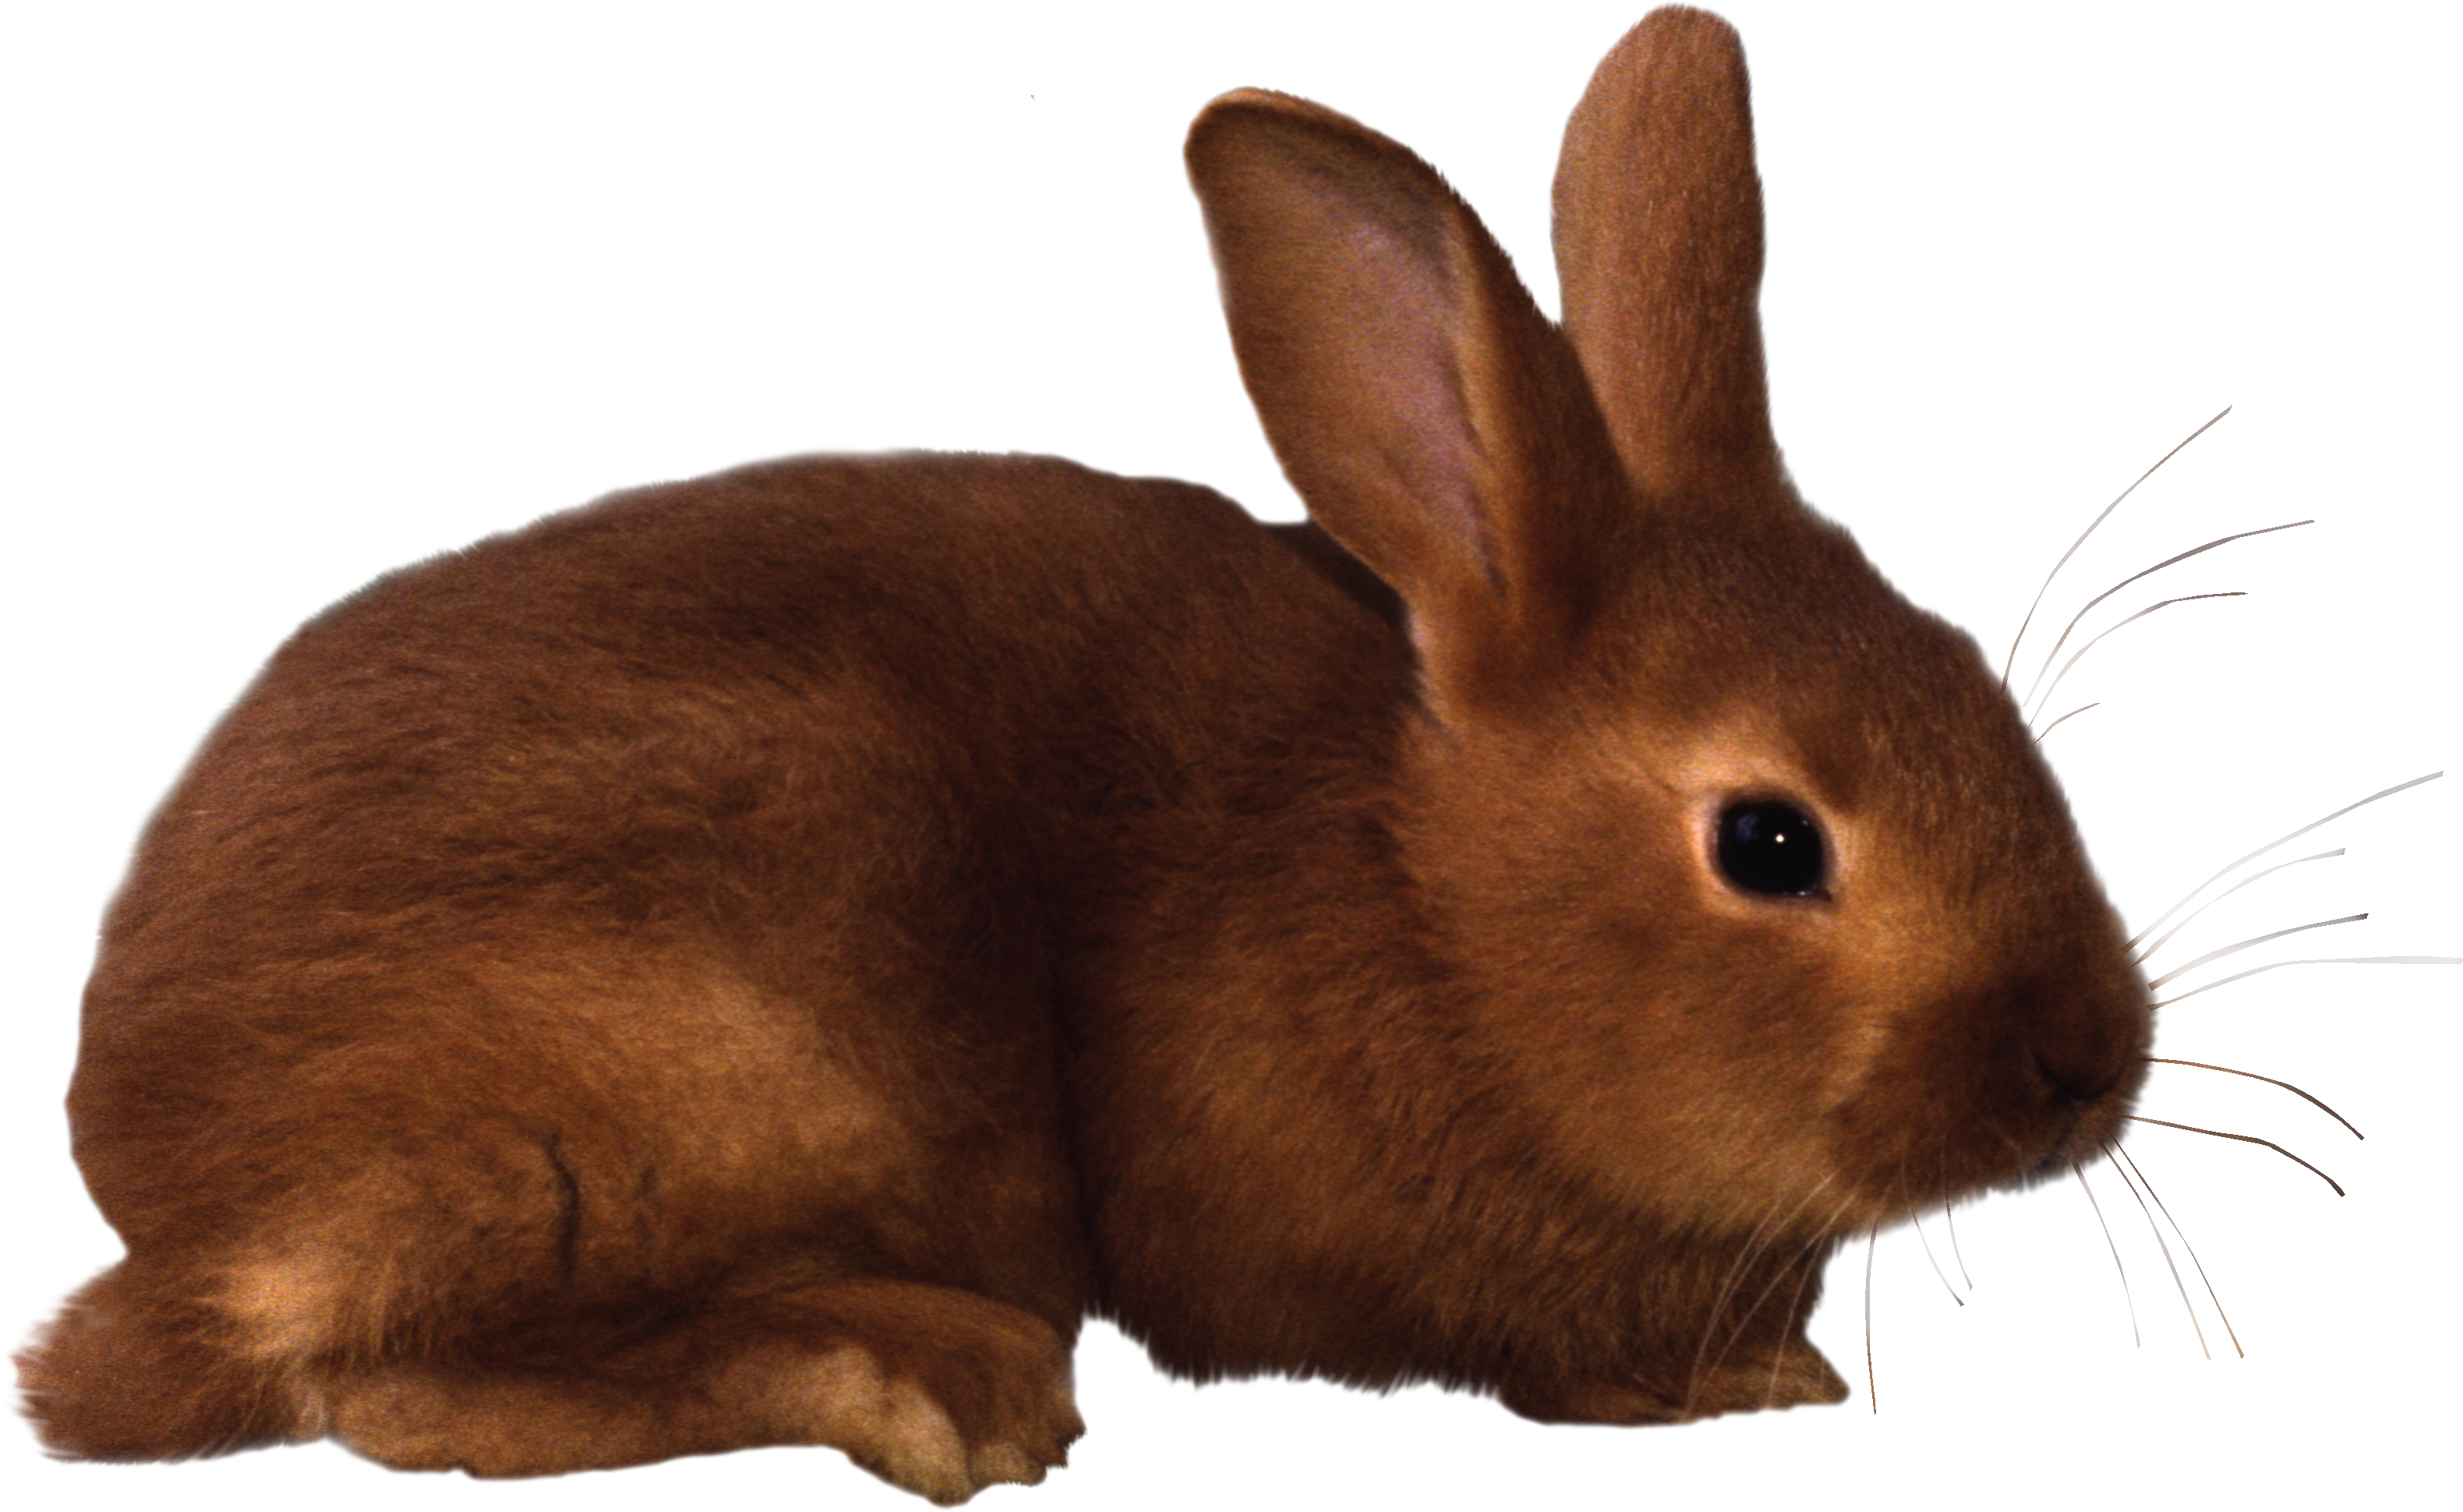 image freeuse download Bunnies clipart wild rabbit. Png images free pictures.